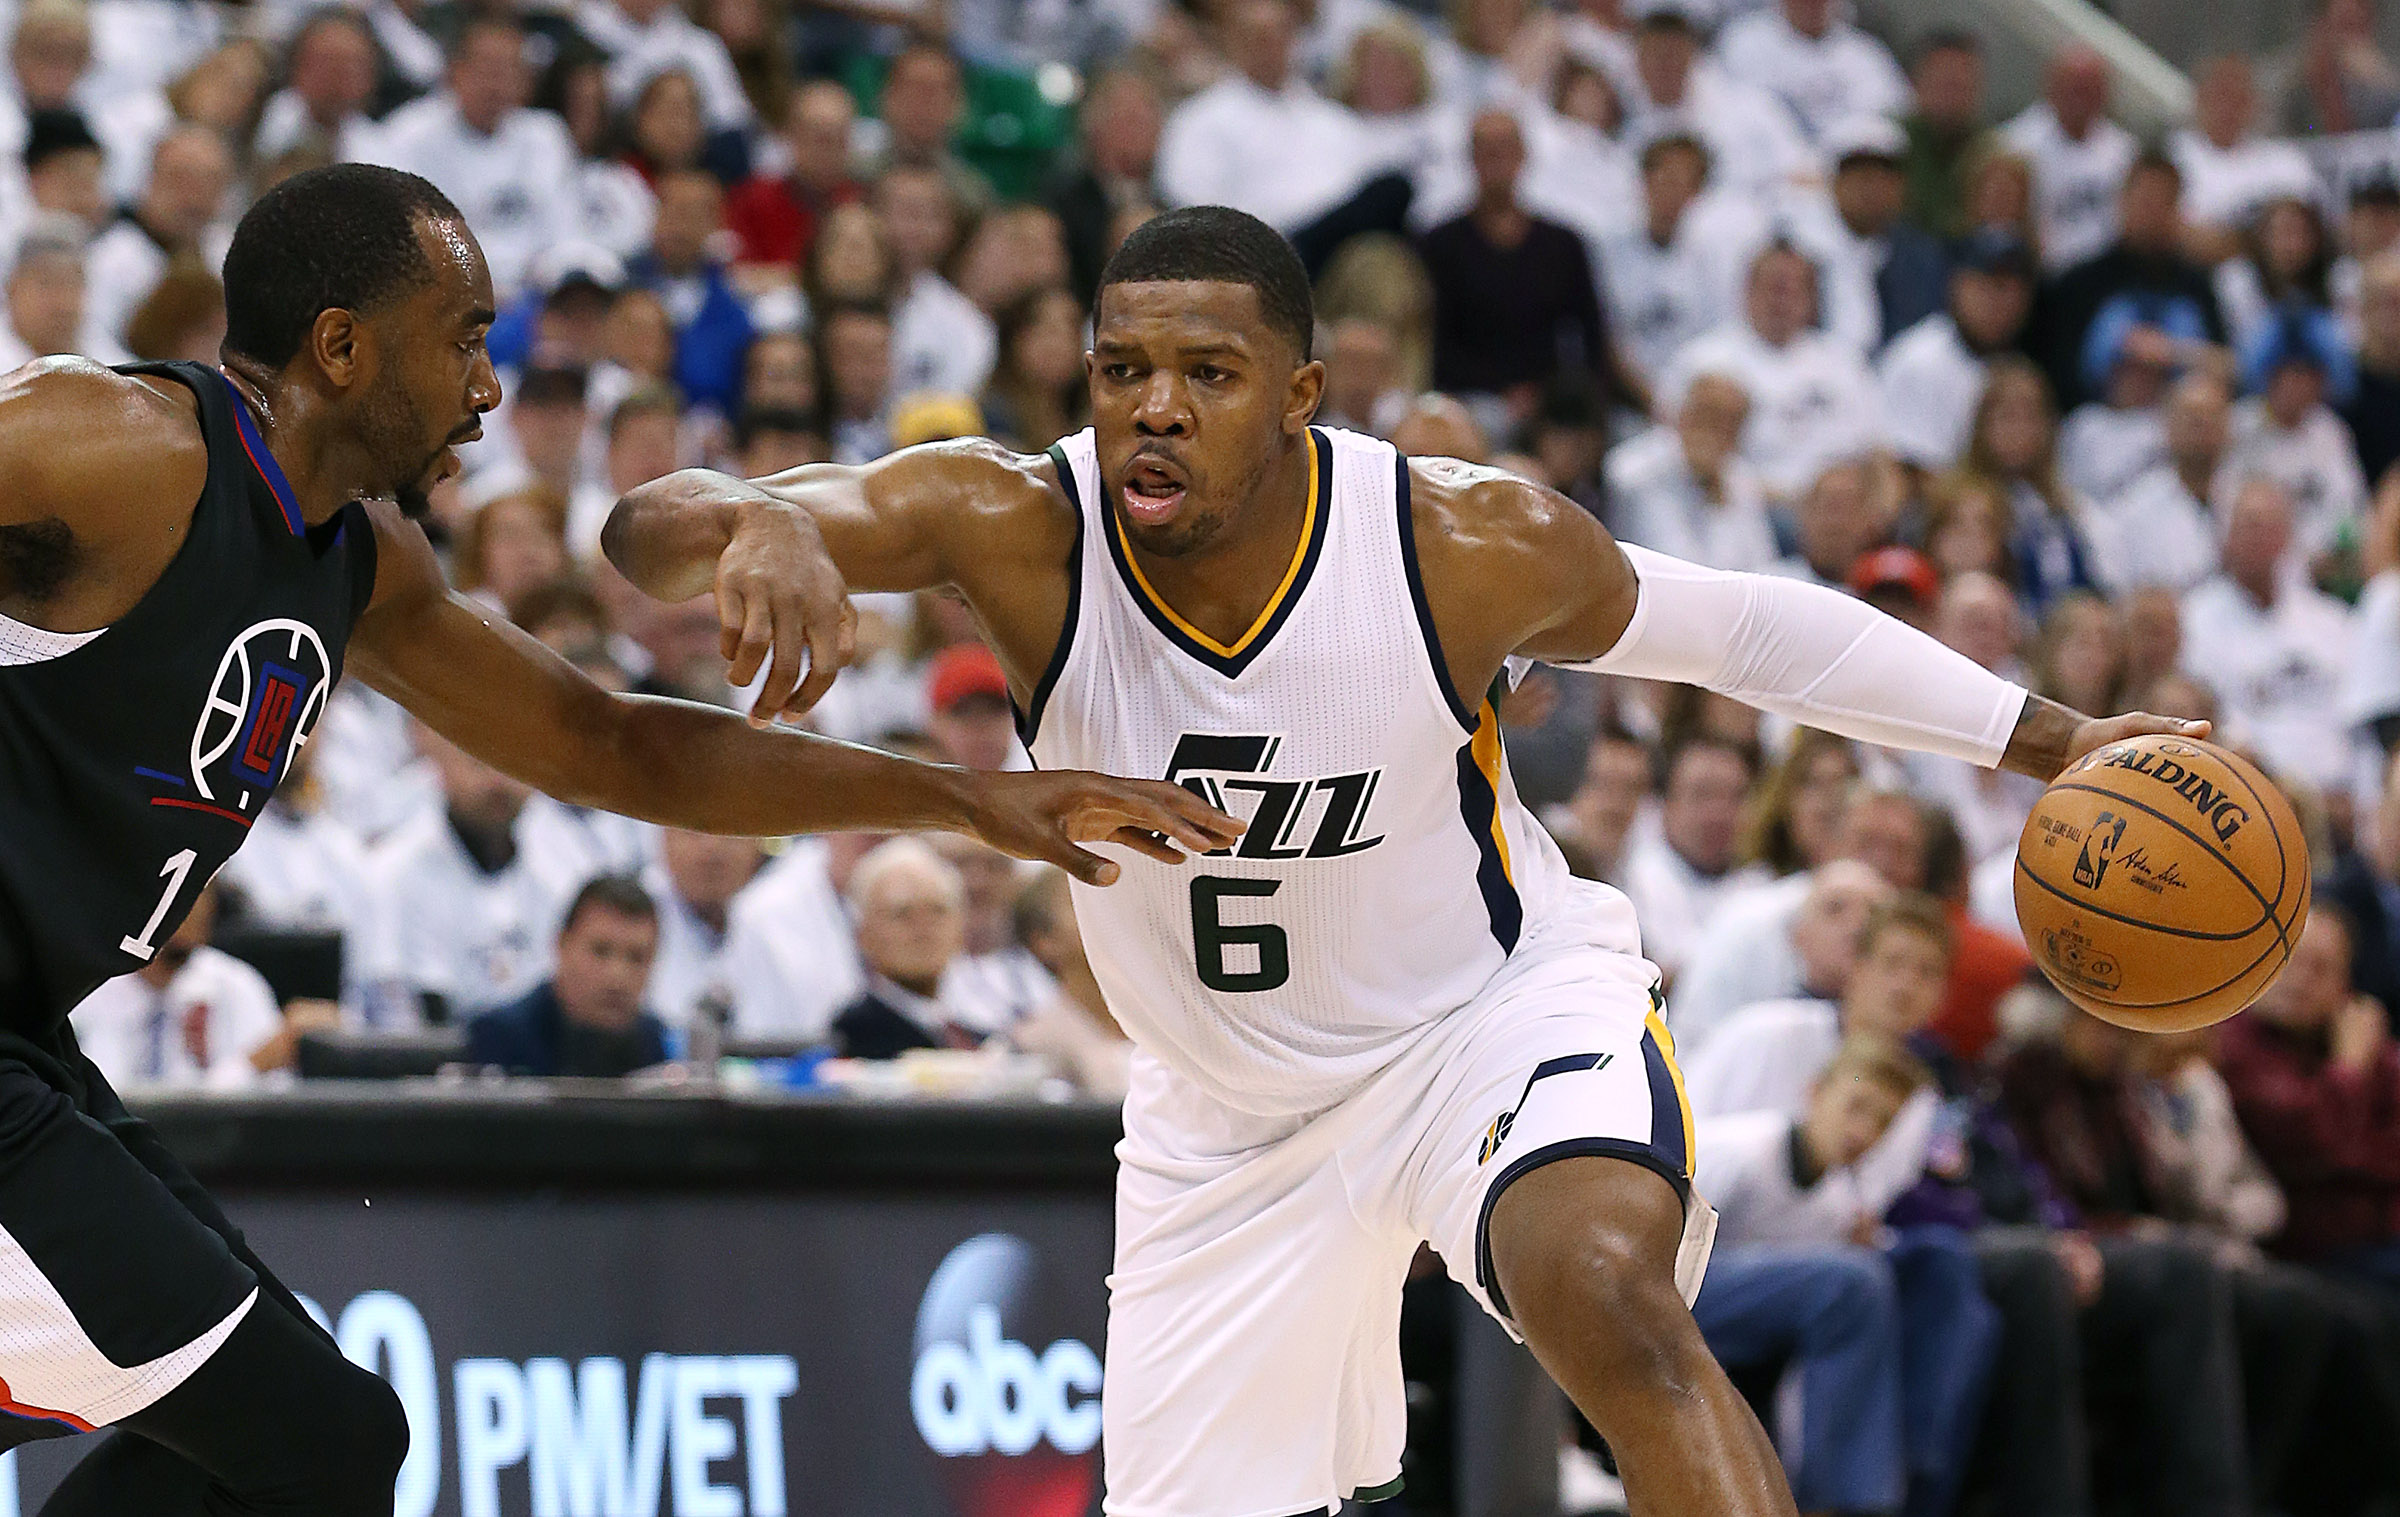 Utah Jazz forward Joe Johnson (6) drives on LA Clippers forward Luc Mbah a Moute (12) as the Utah Jazz and the LA Clippers compete in Game 6 of the NBA playoffs at Vivint Smart Home Arena in Salt Lake City on Friday, April 28, 2017.